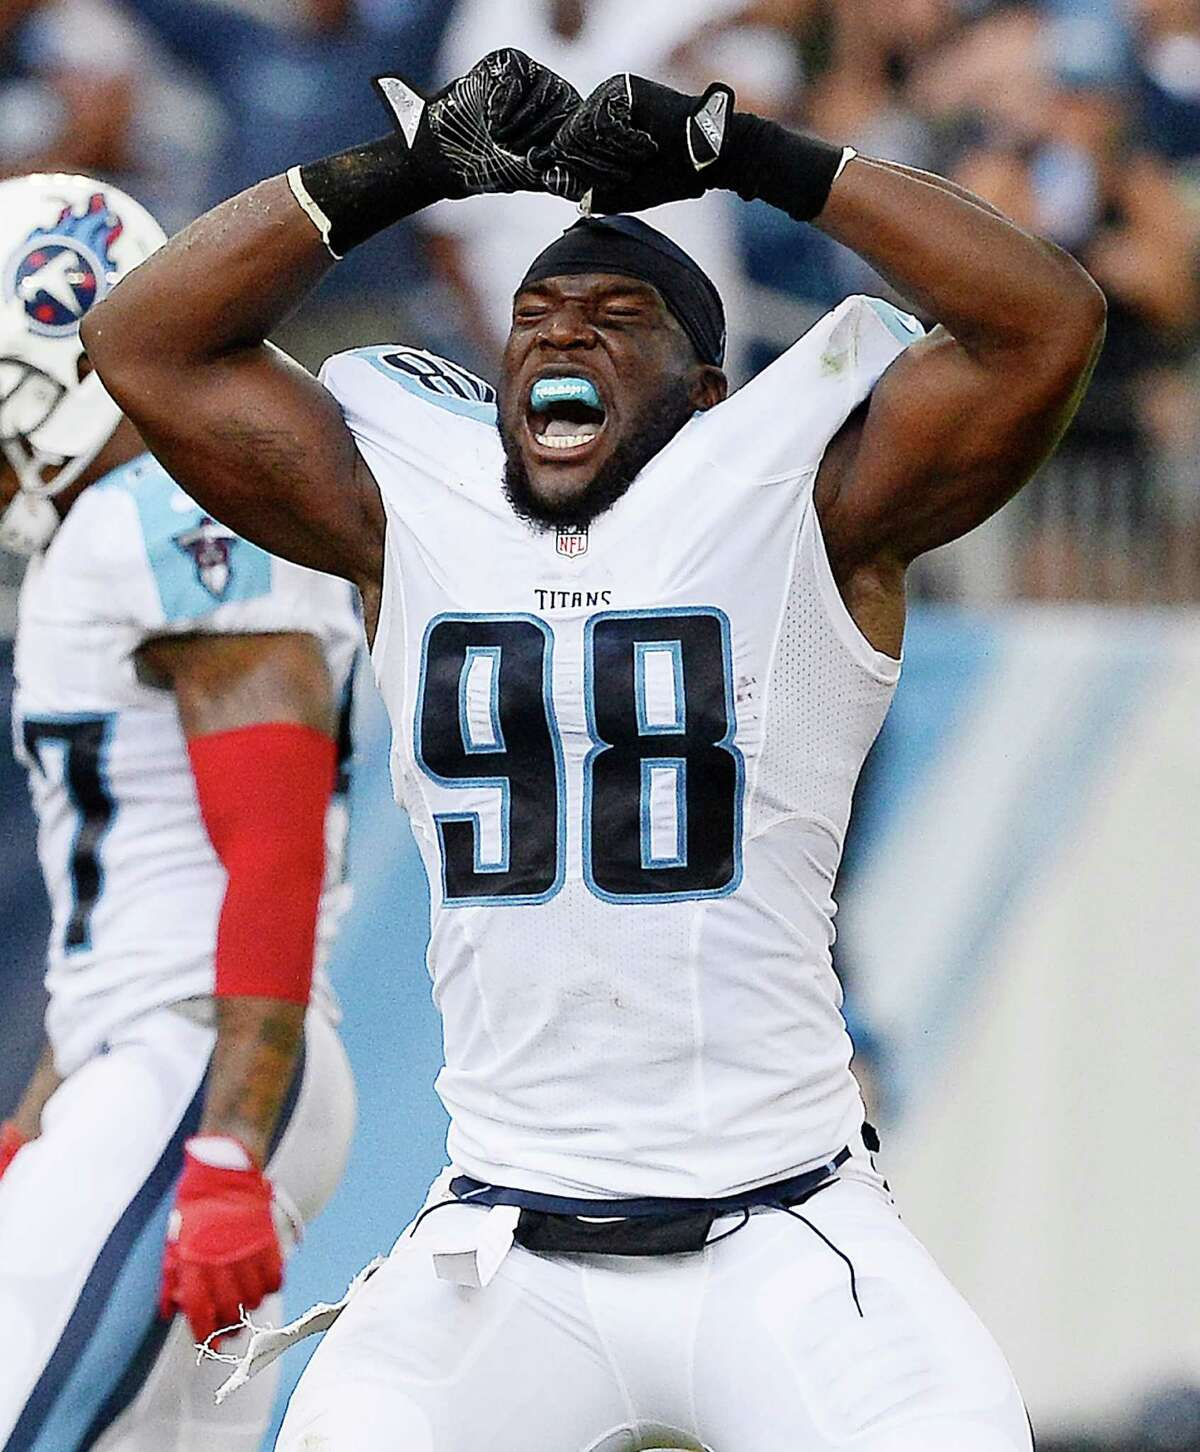 Tennessee Titans outside linebacker Brian Orakpo (98) celebrates his tackle of Carolina Panthers quarterback Cam Newton (1) the first half of an NFL preseason football game, Saturday, Aug. 20, 2016, in Nashville, Tenn. (AP Photo/Mark Zaleski)